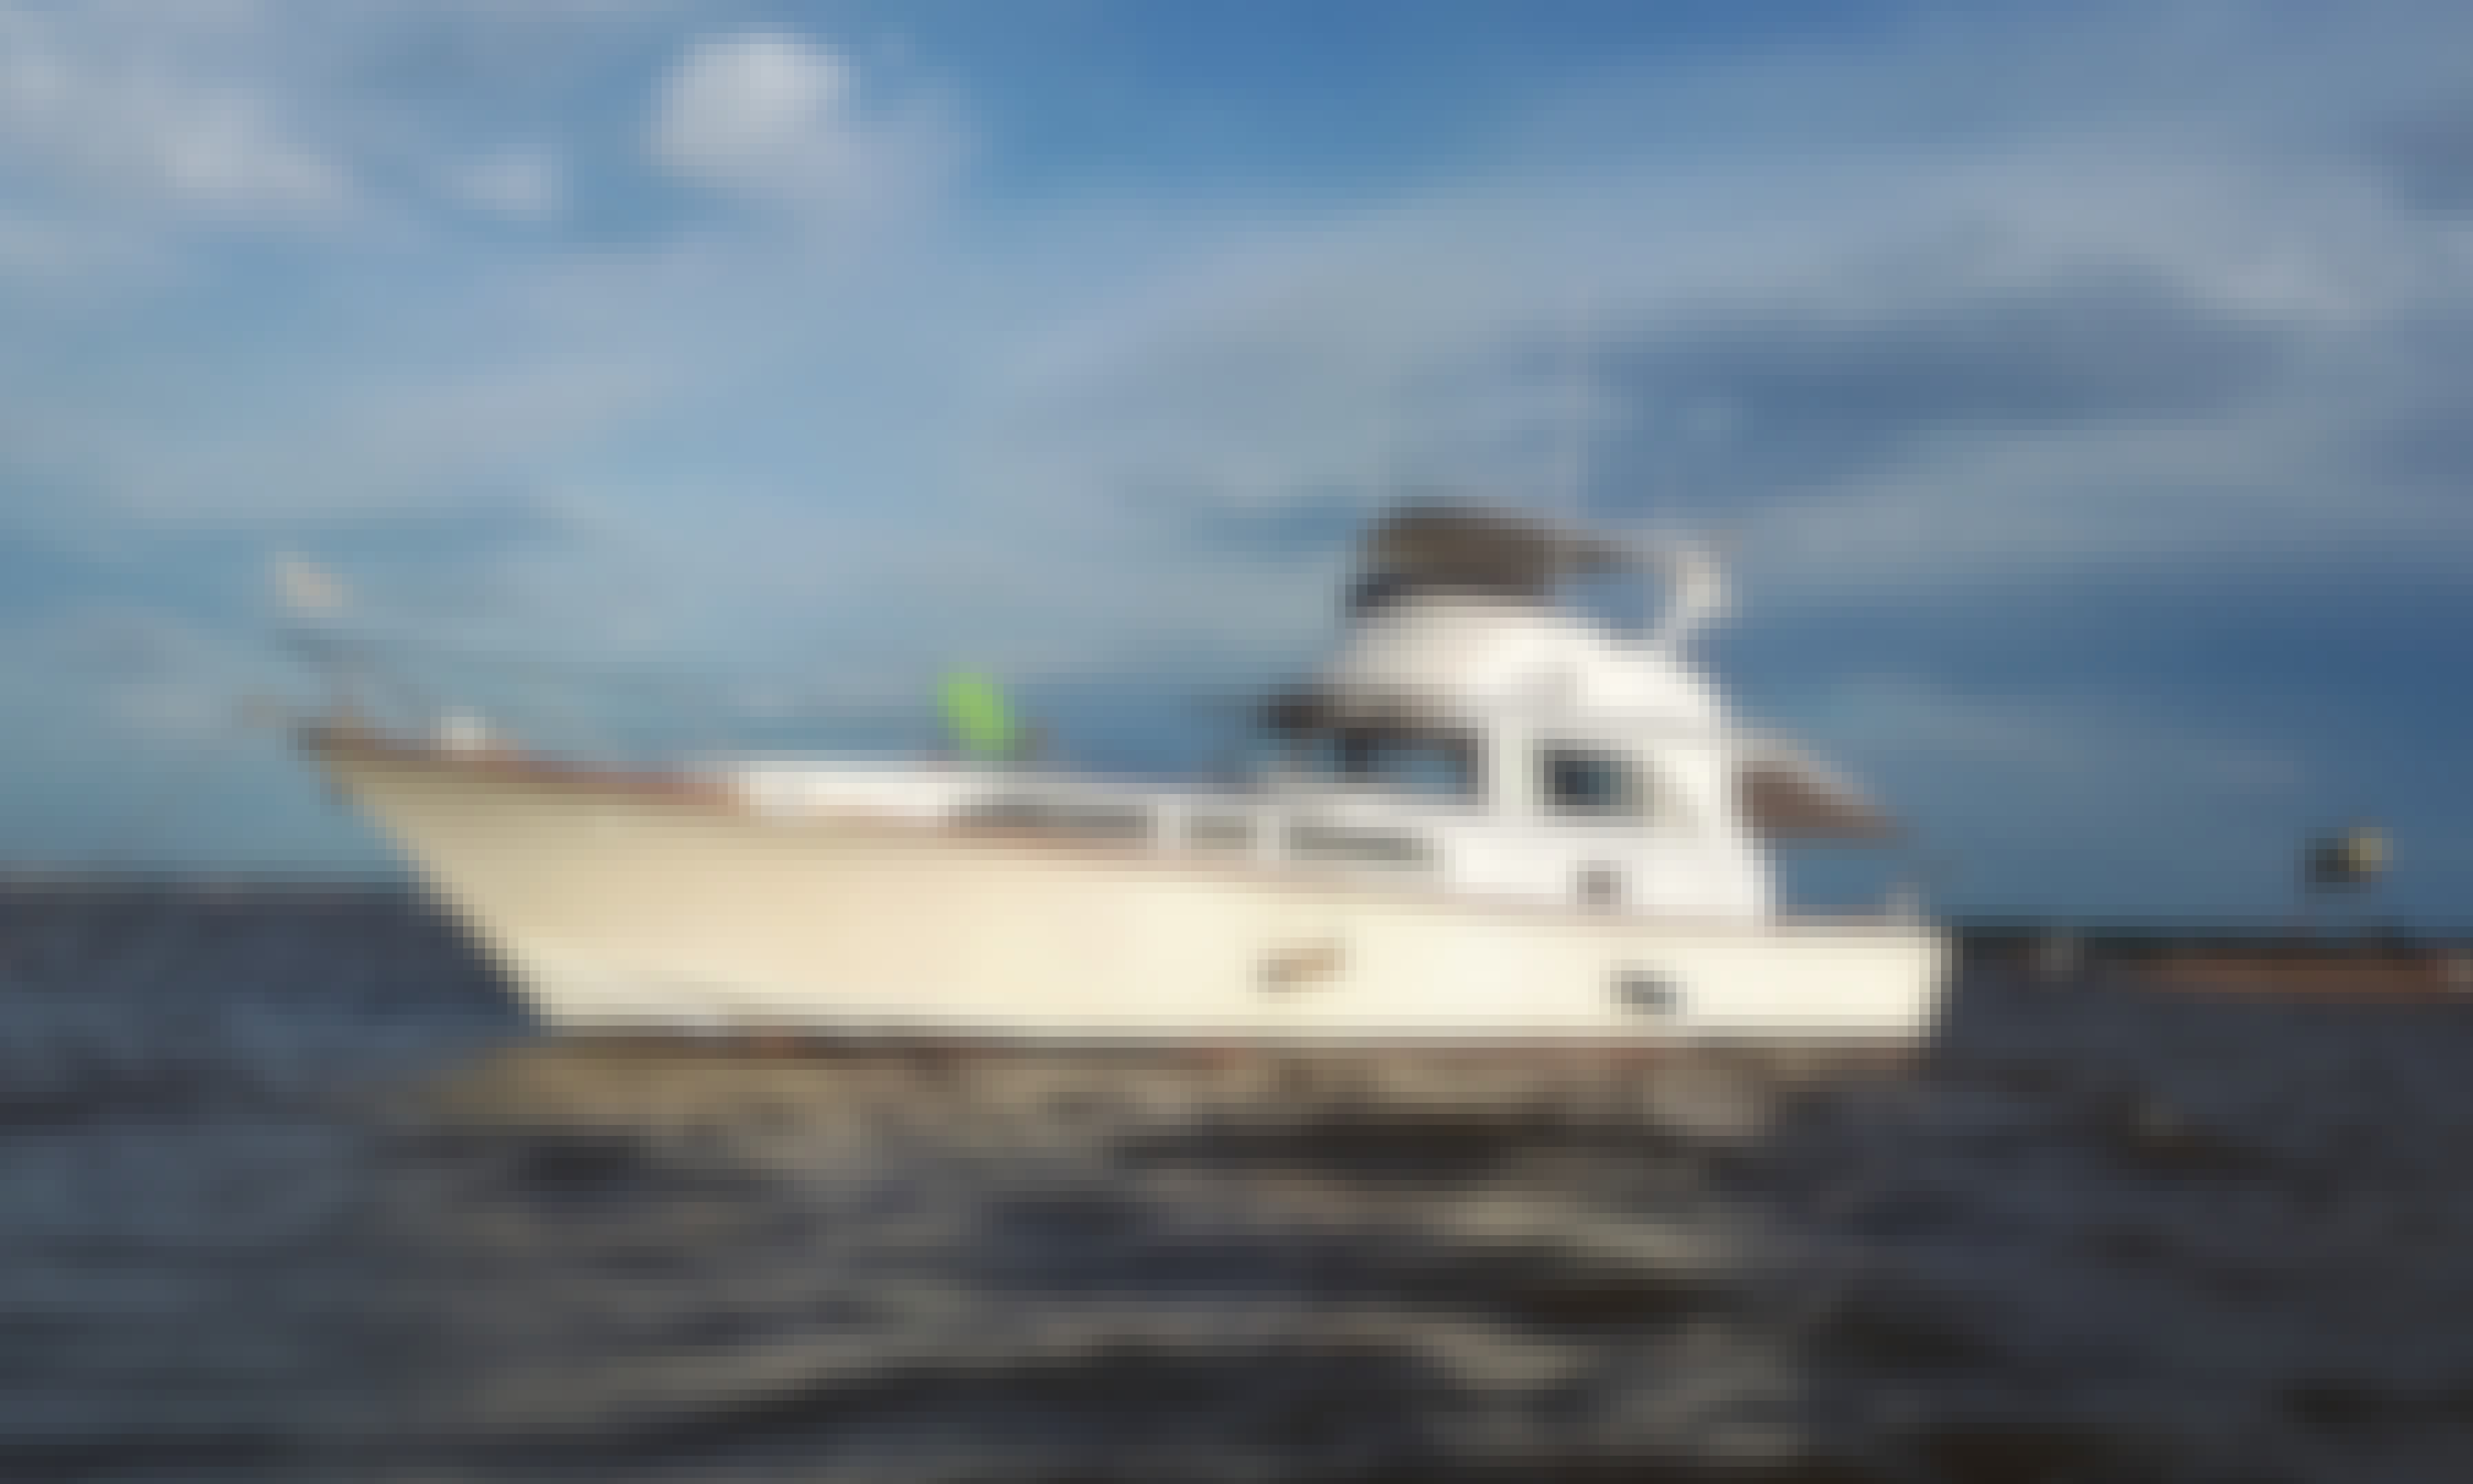 Motor Yacht rental in Posadas